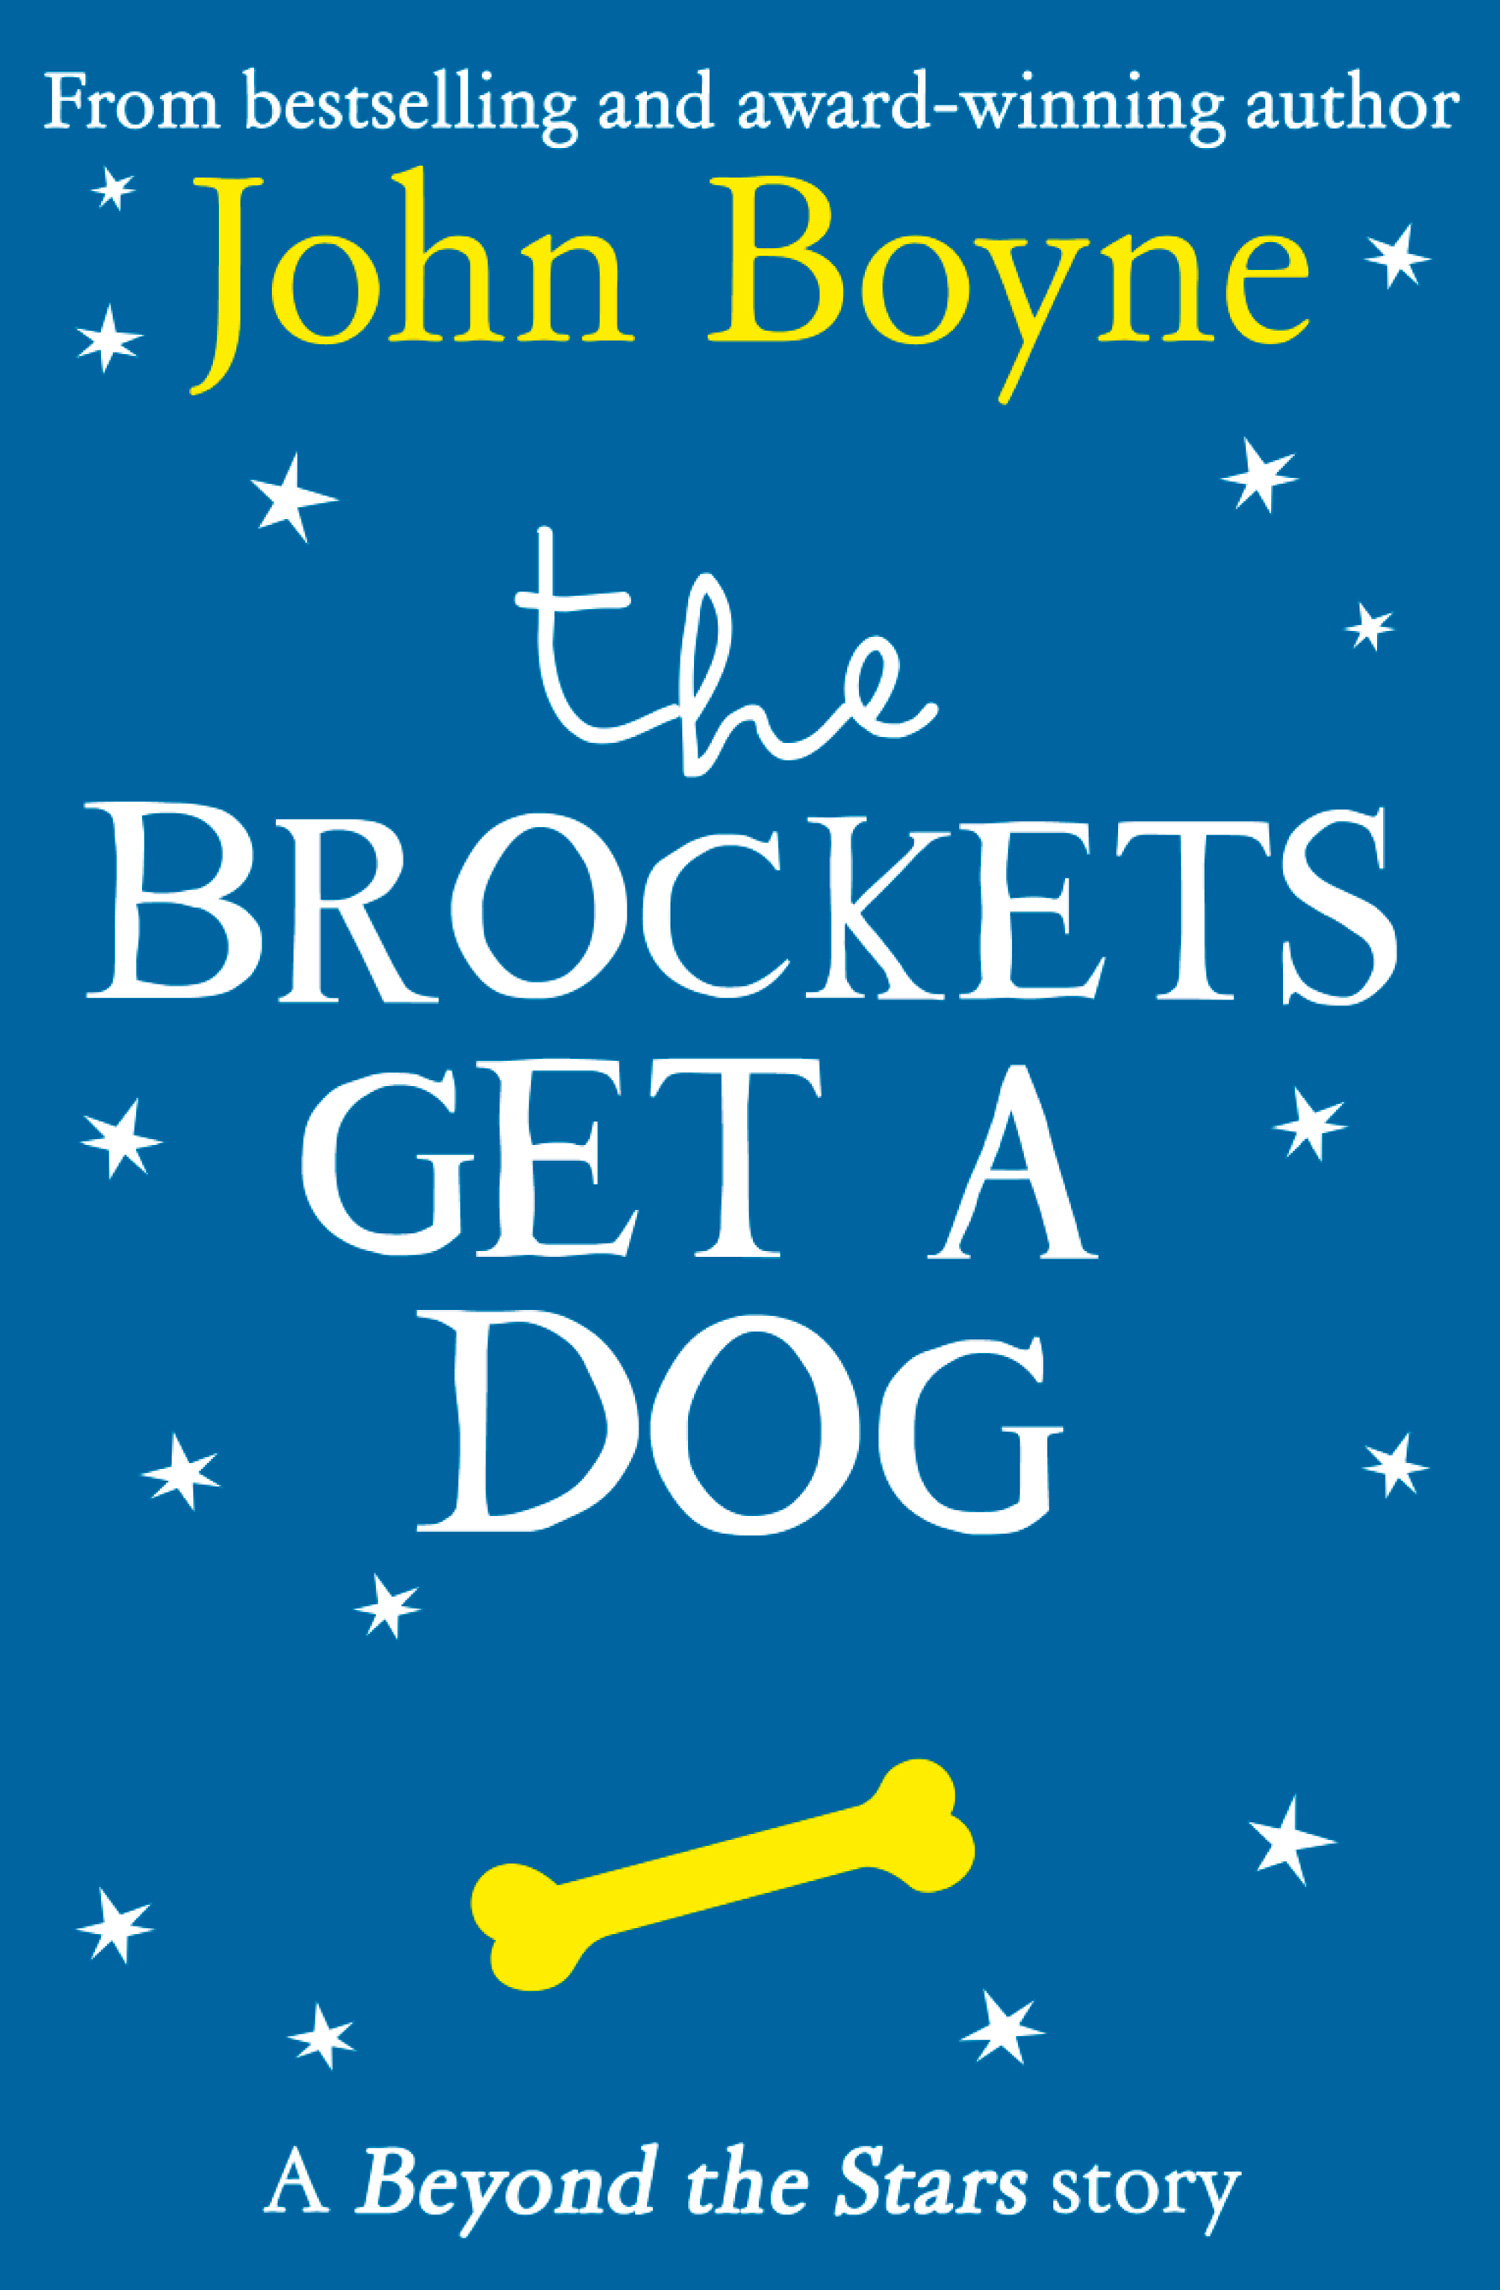 The Brockets Get a Dog